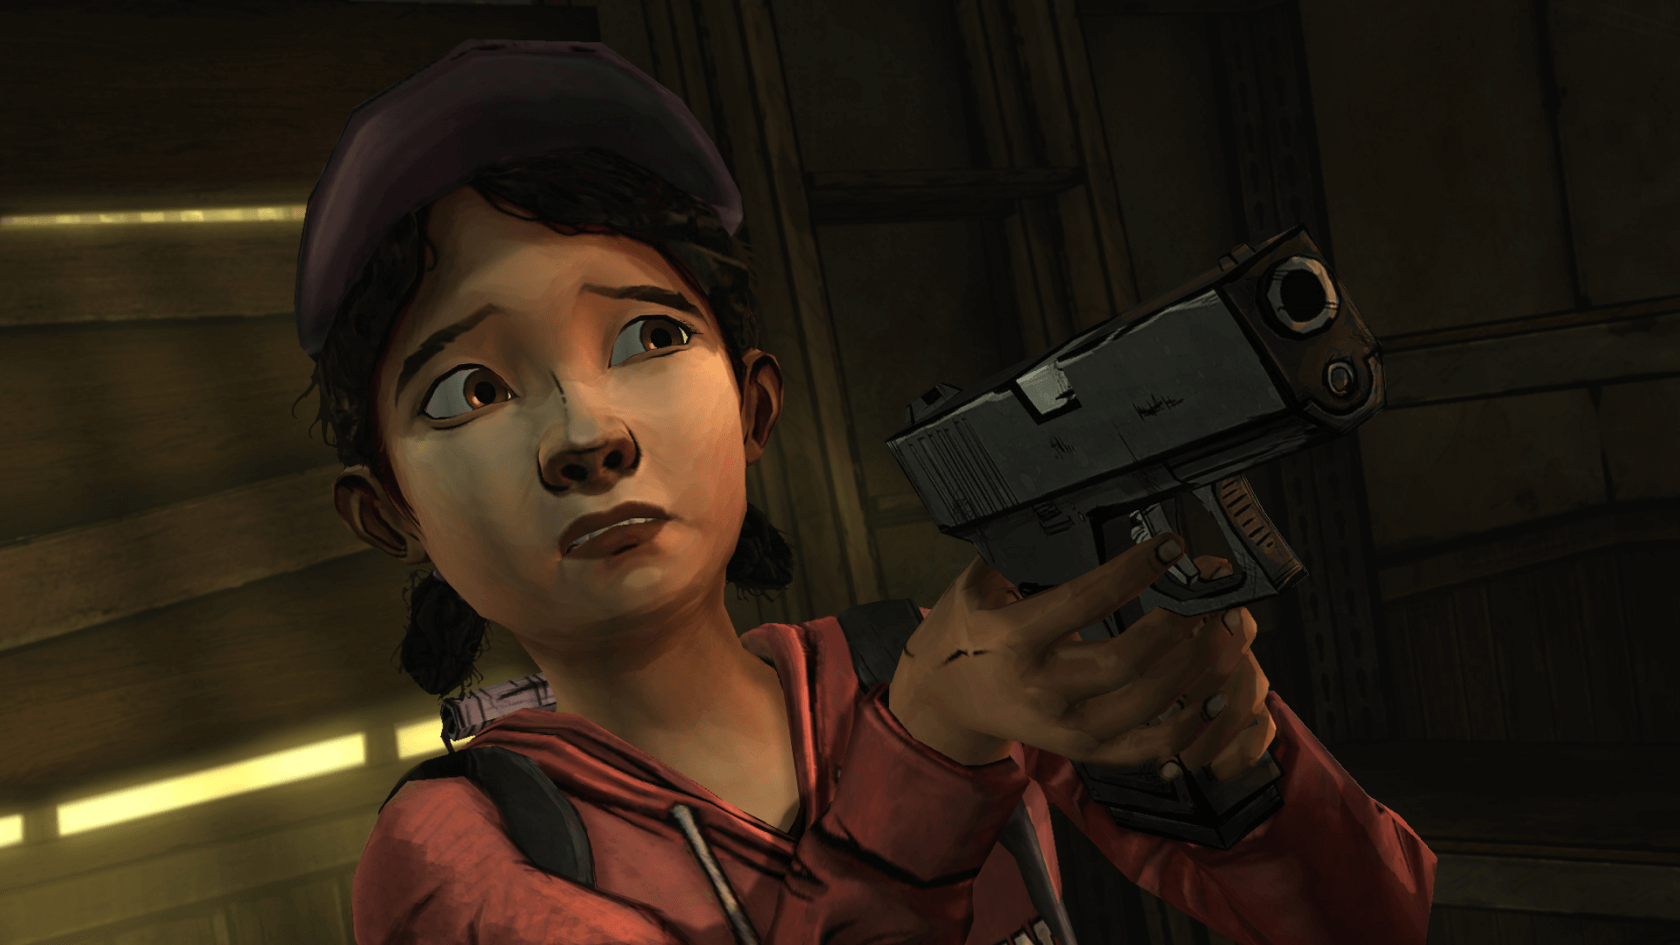 Telltale's 'The Walking Dead' adventure game franchise is returning to Steam